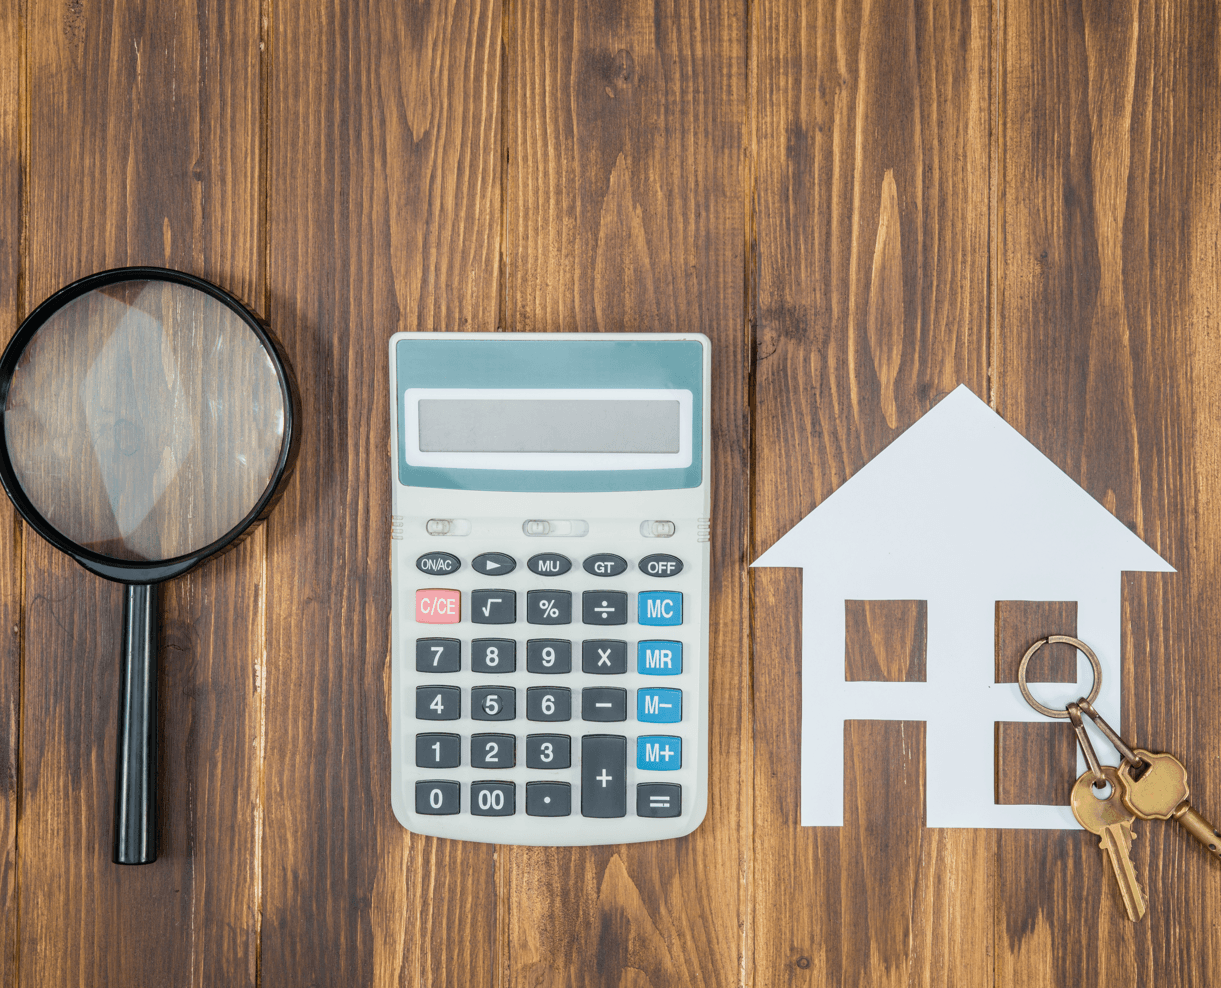 Planning to Buy Your First Home: What's Affordable Calculator Image